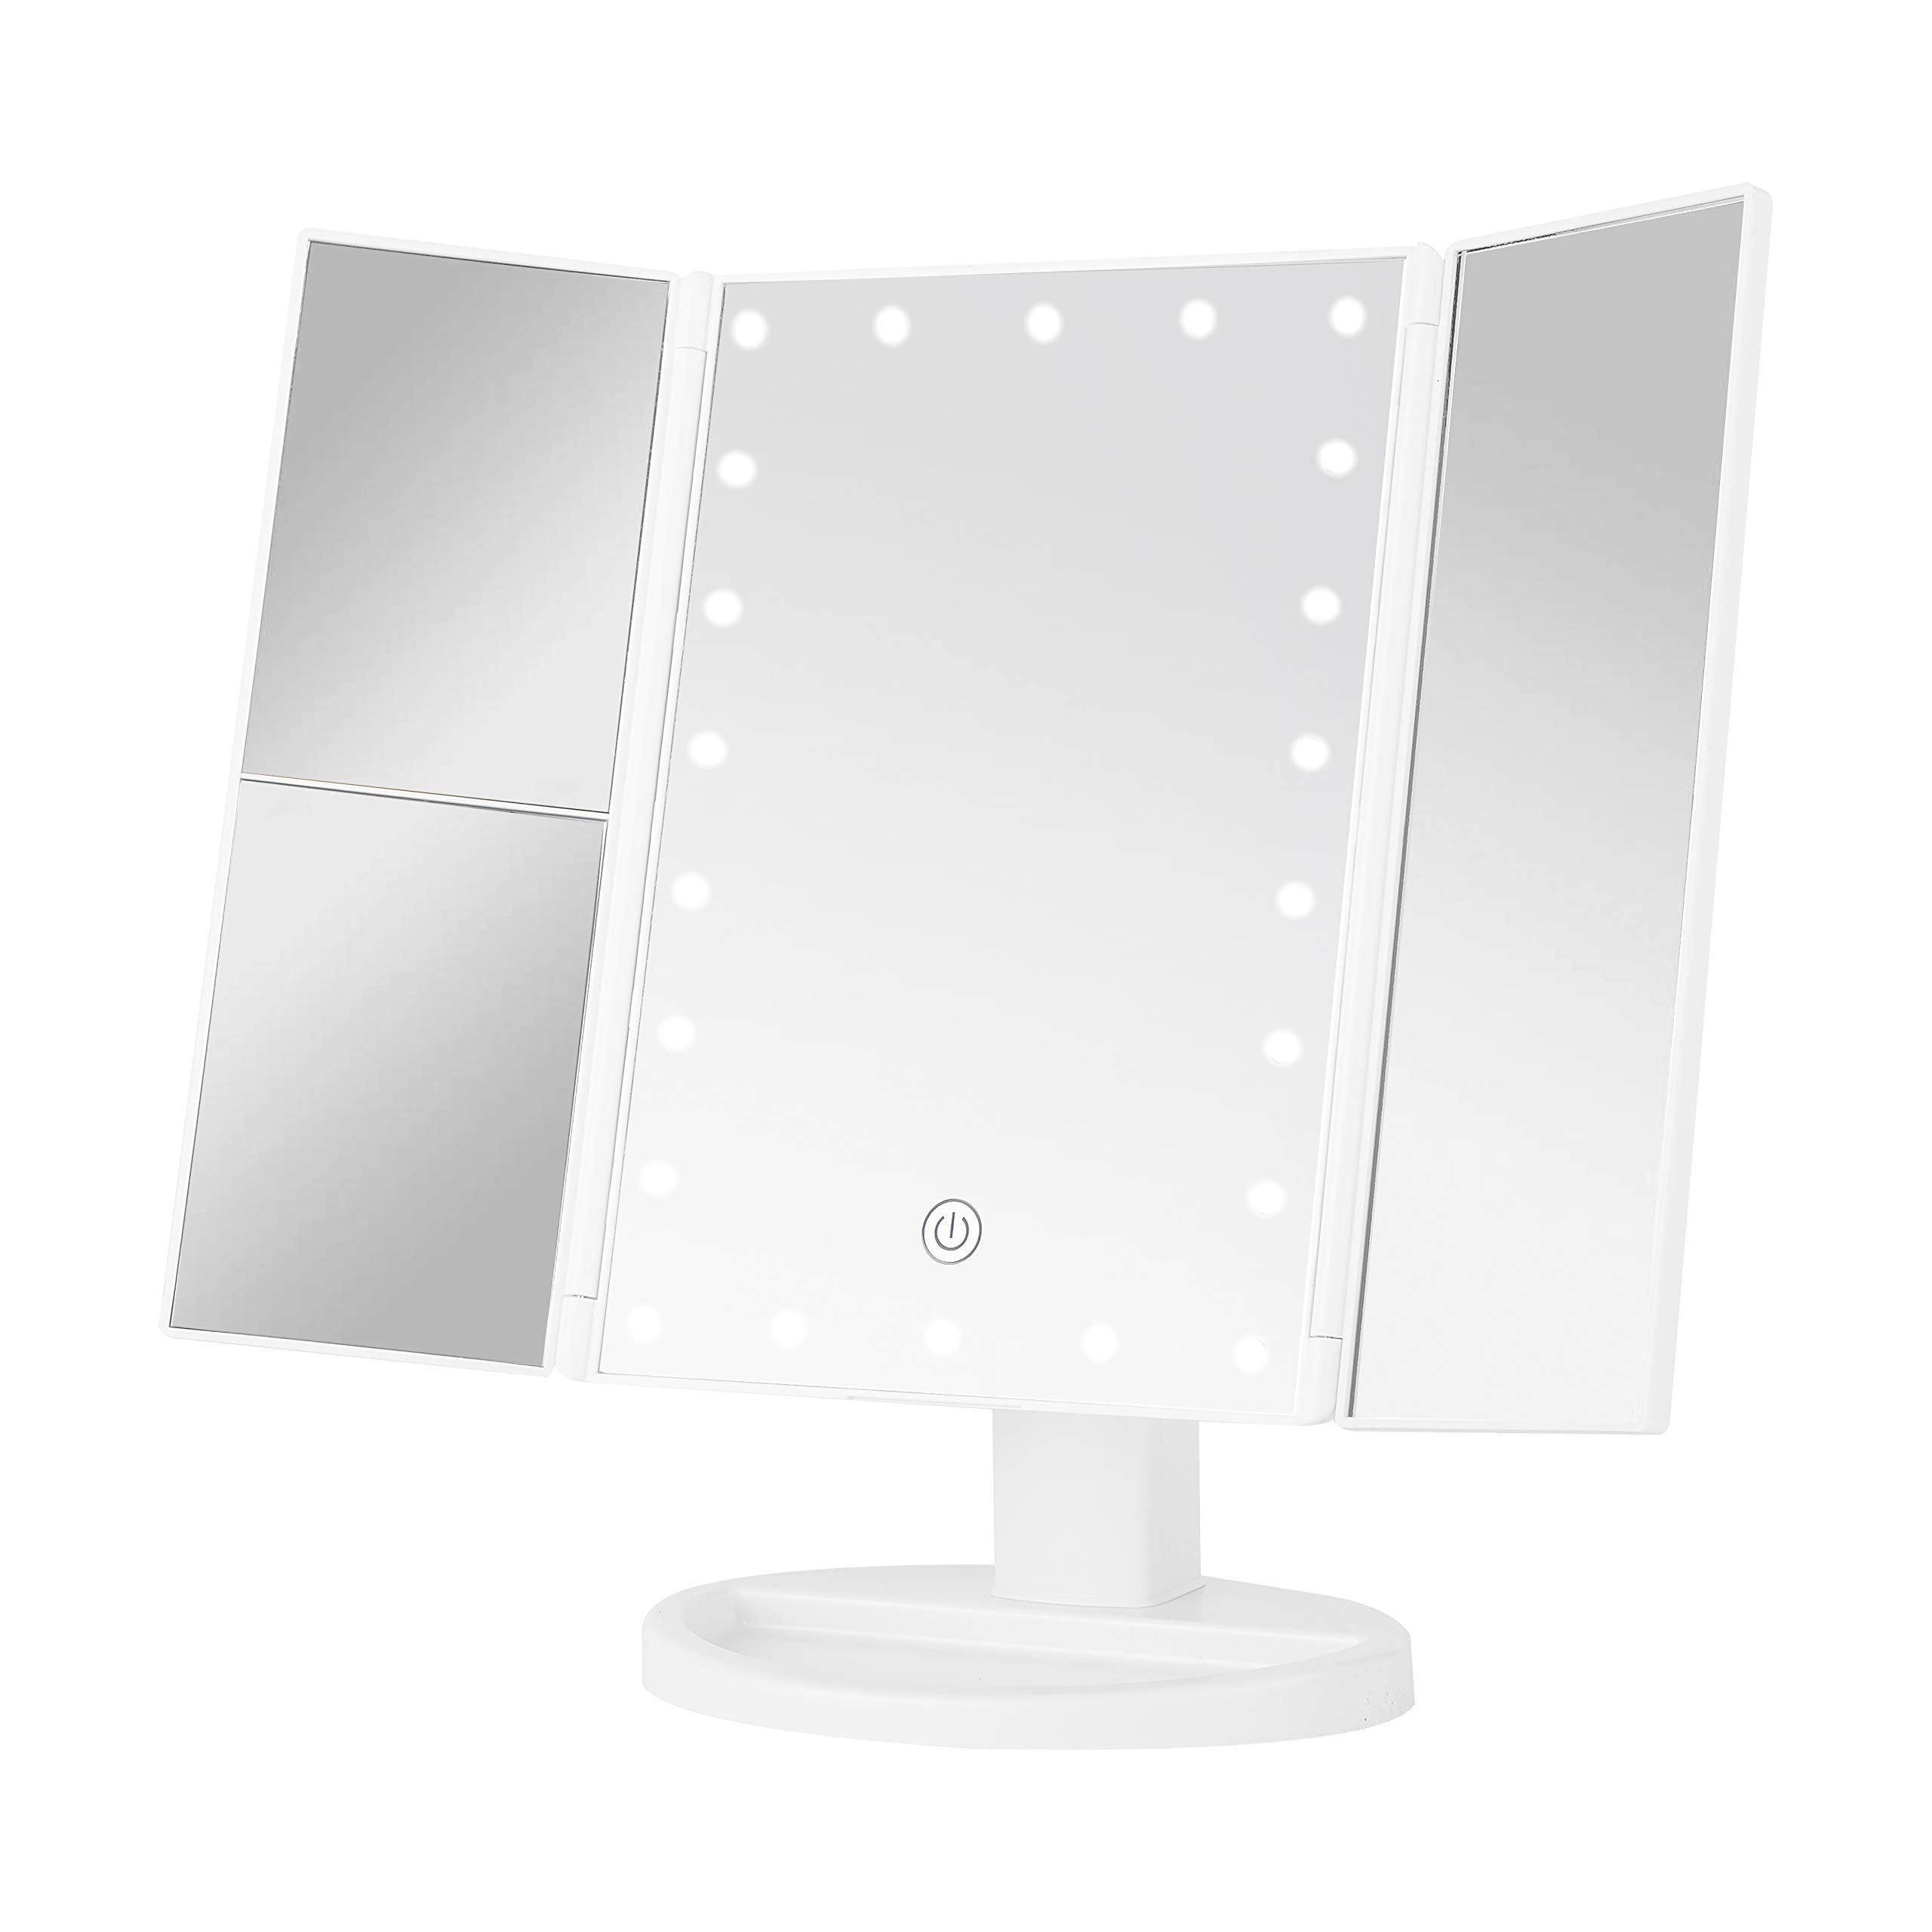 Sevillin Makeup Mirror with Lights,22 LED Vanity Mirror with 1X/2X3X Magnifica,Touch Screen Switch,Dual Power Supply,Portable Trifold Makeup Mirror Cosmetic Lighted Up Mirrortion White